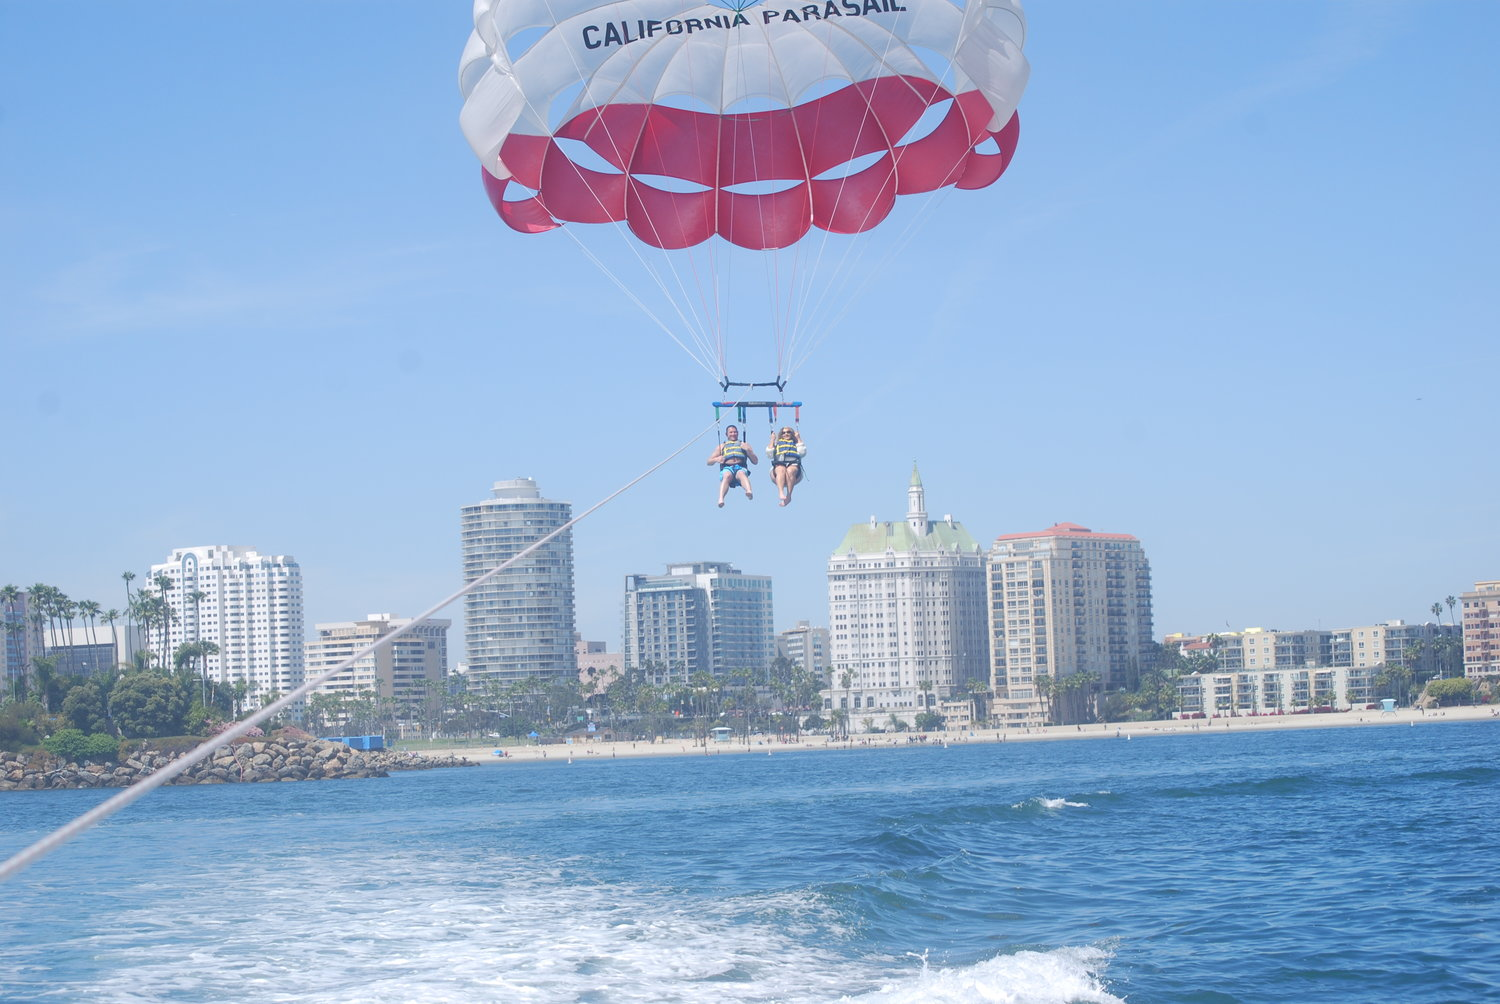 Long Beach Parasail Jet Ski Als